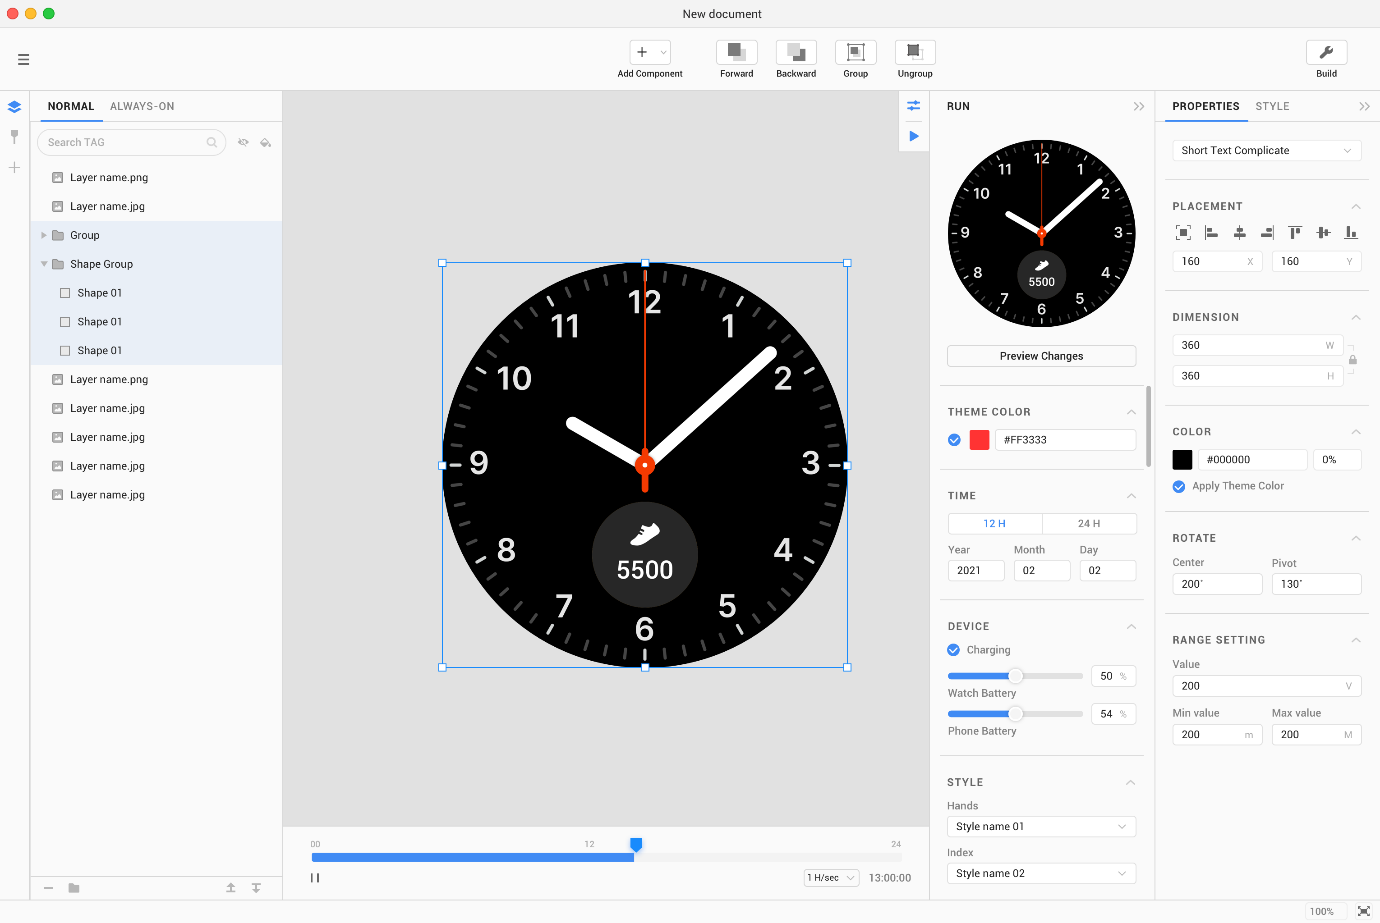 image of clock face in editing software